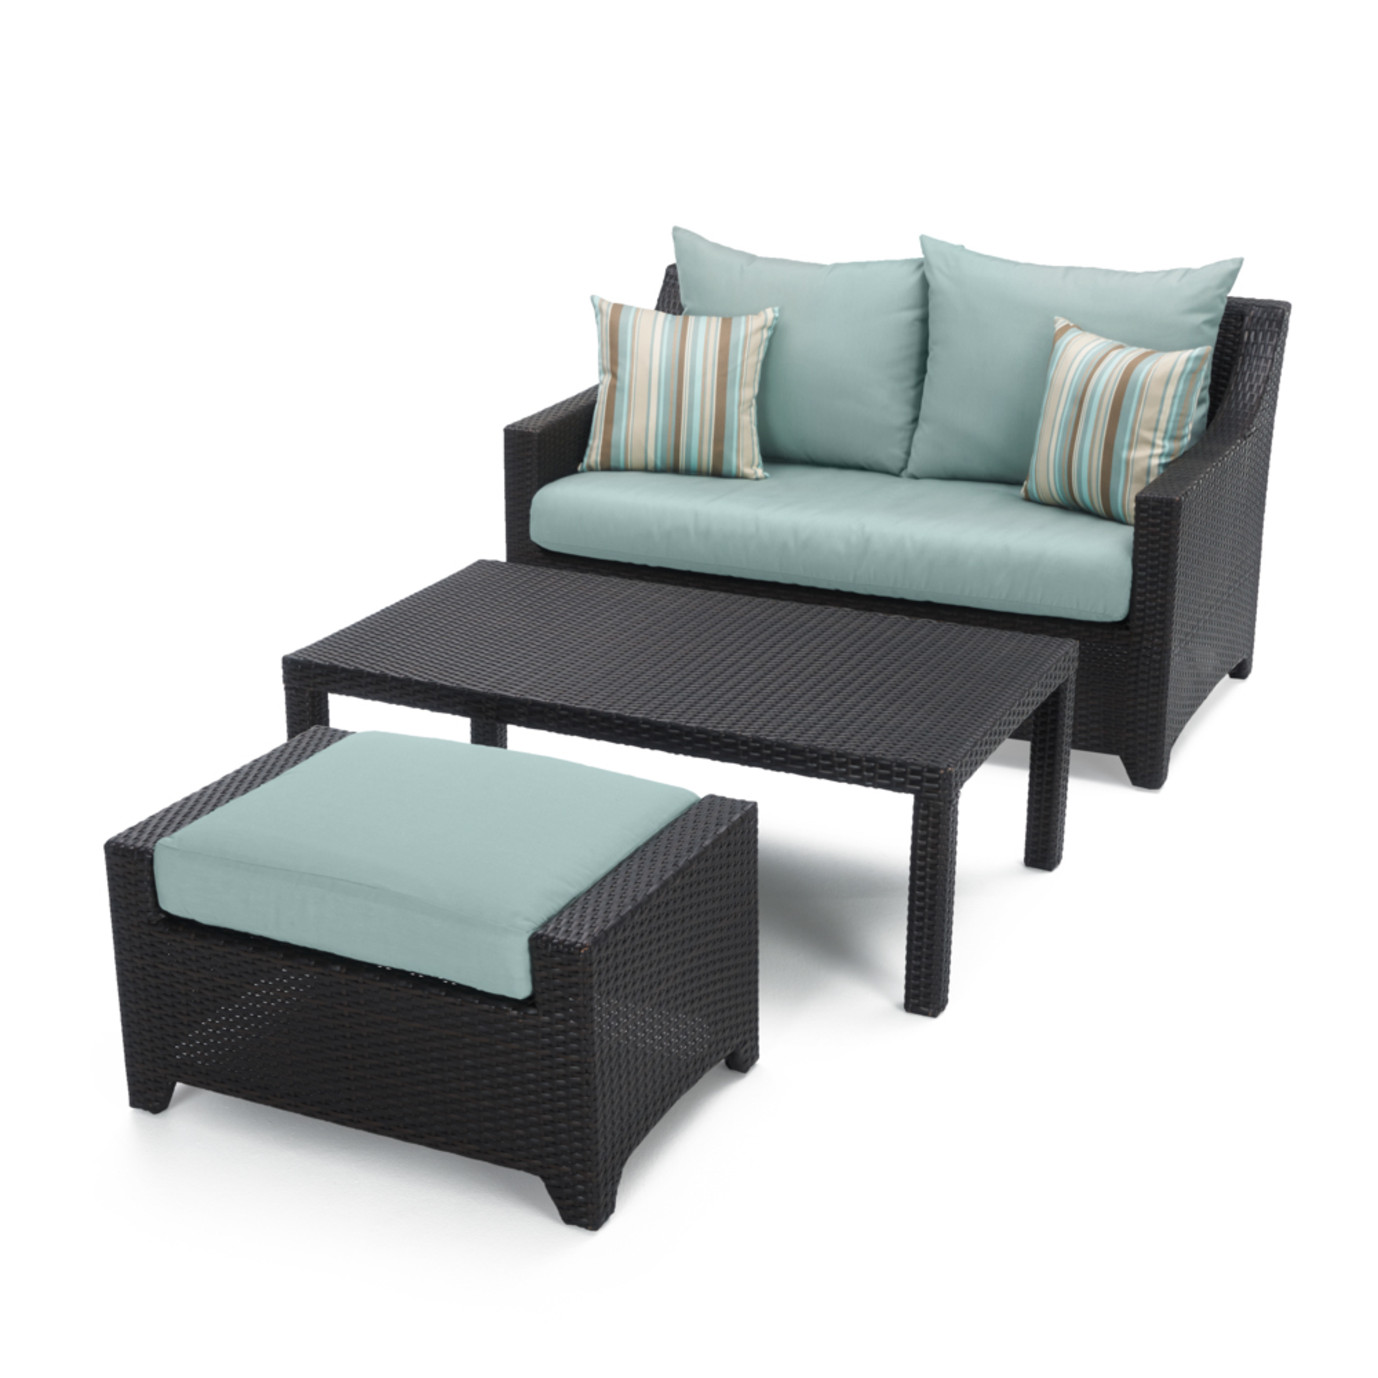 Deco Loveseat And Ottoman With Coffee Table Bliss Blue Rst Brands